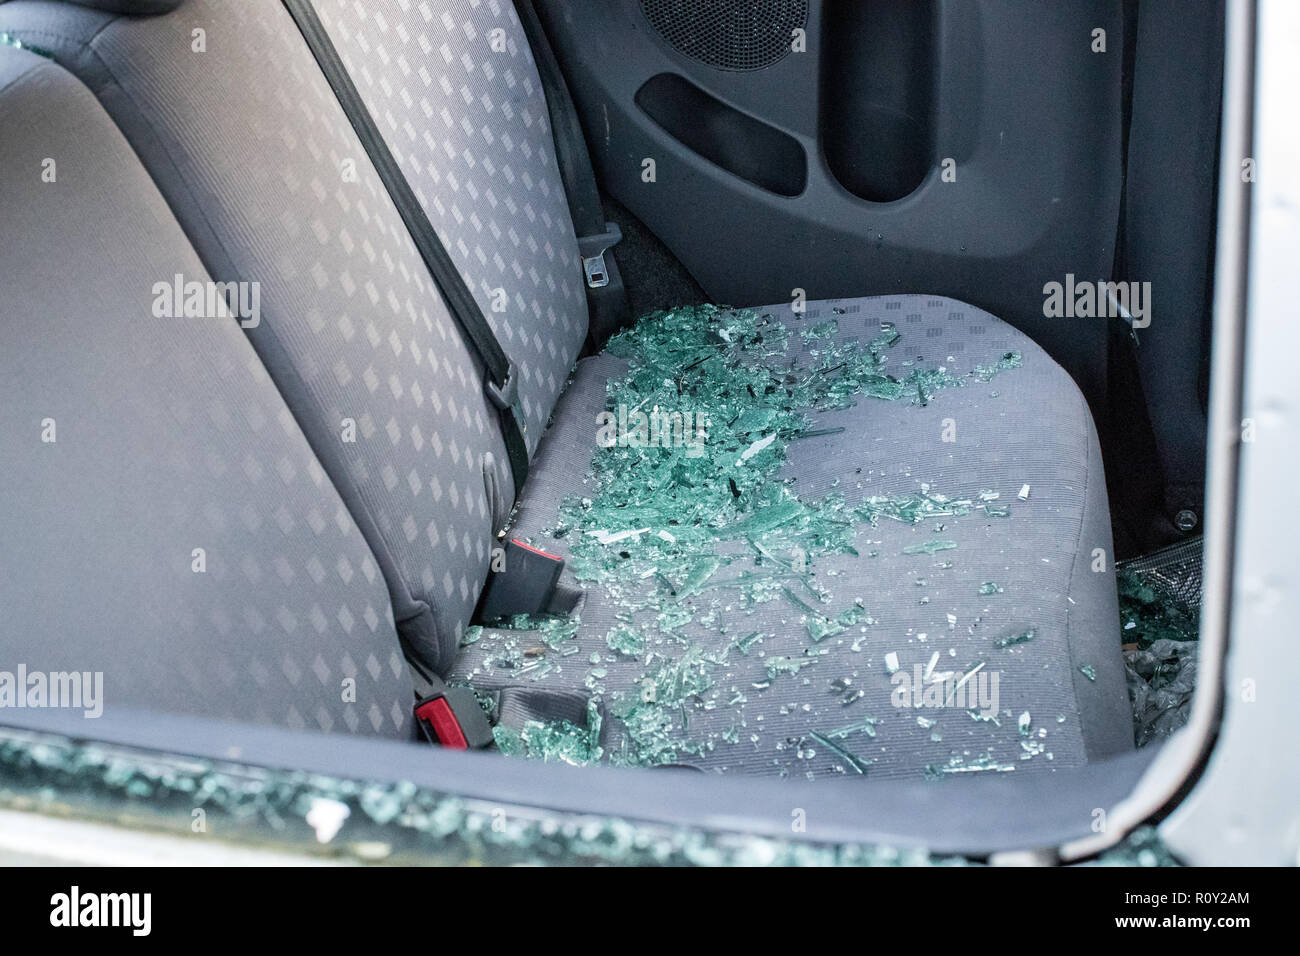 The back seat of a vandalized car with broken smashed glass covering the seat.  The car was broken into and stolen. - Stock Image